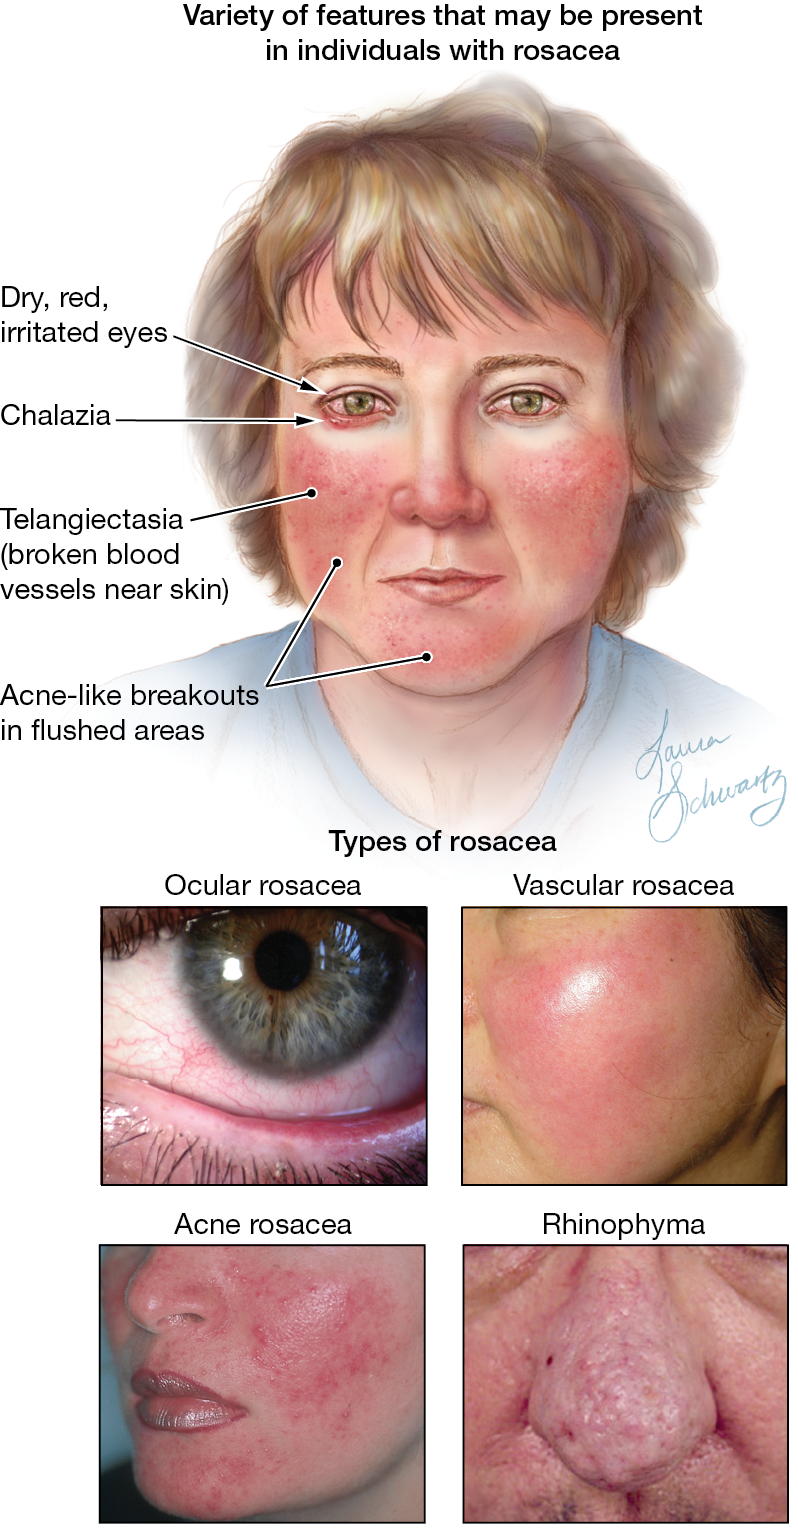 Graphic showing progression of rosacea from moderate to severe.